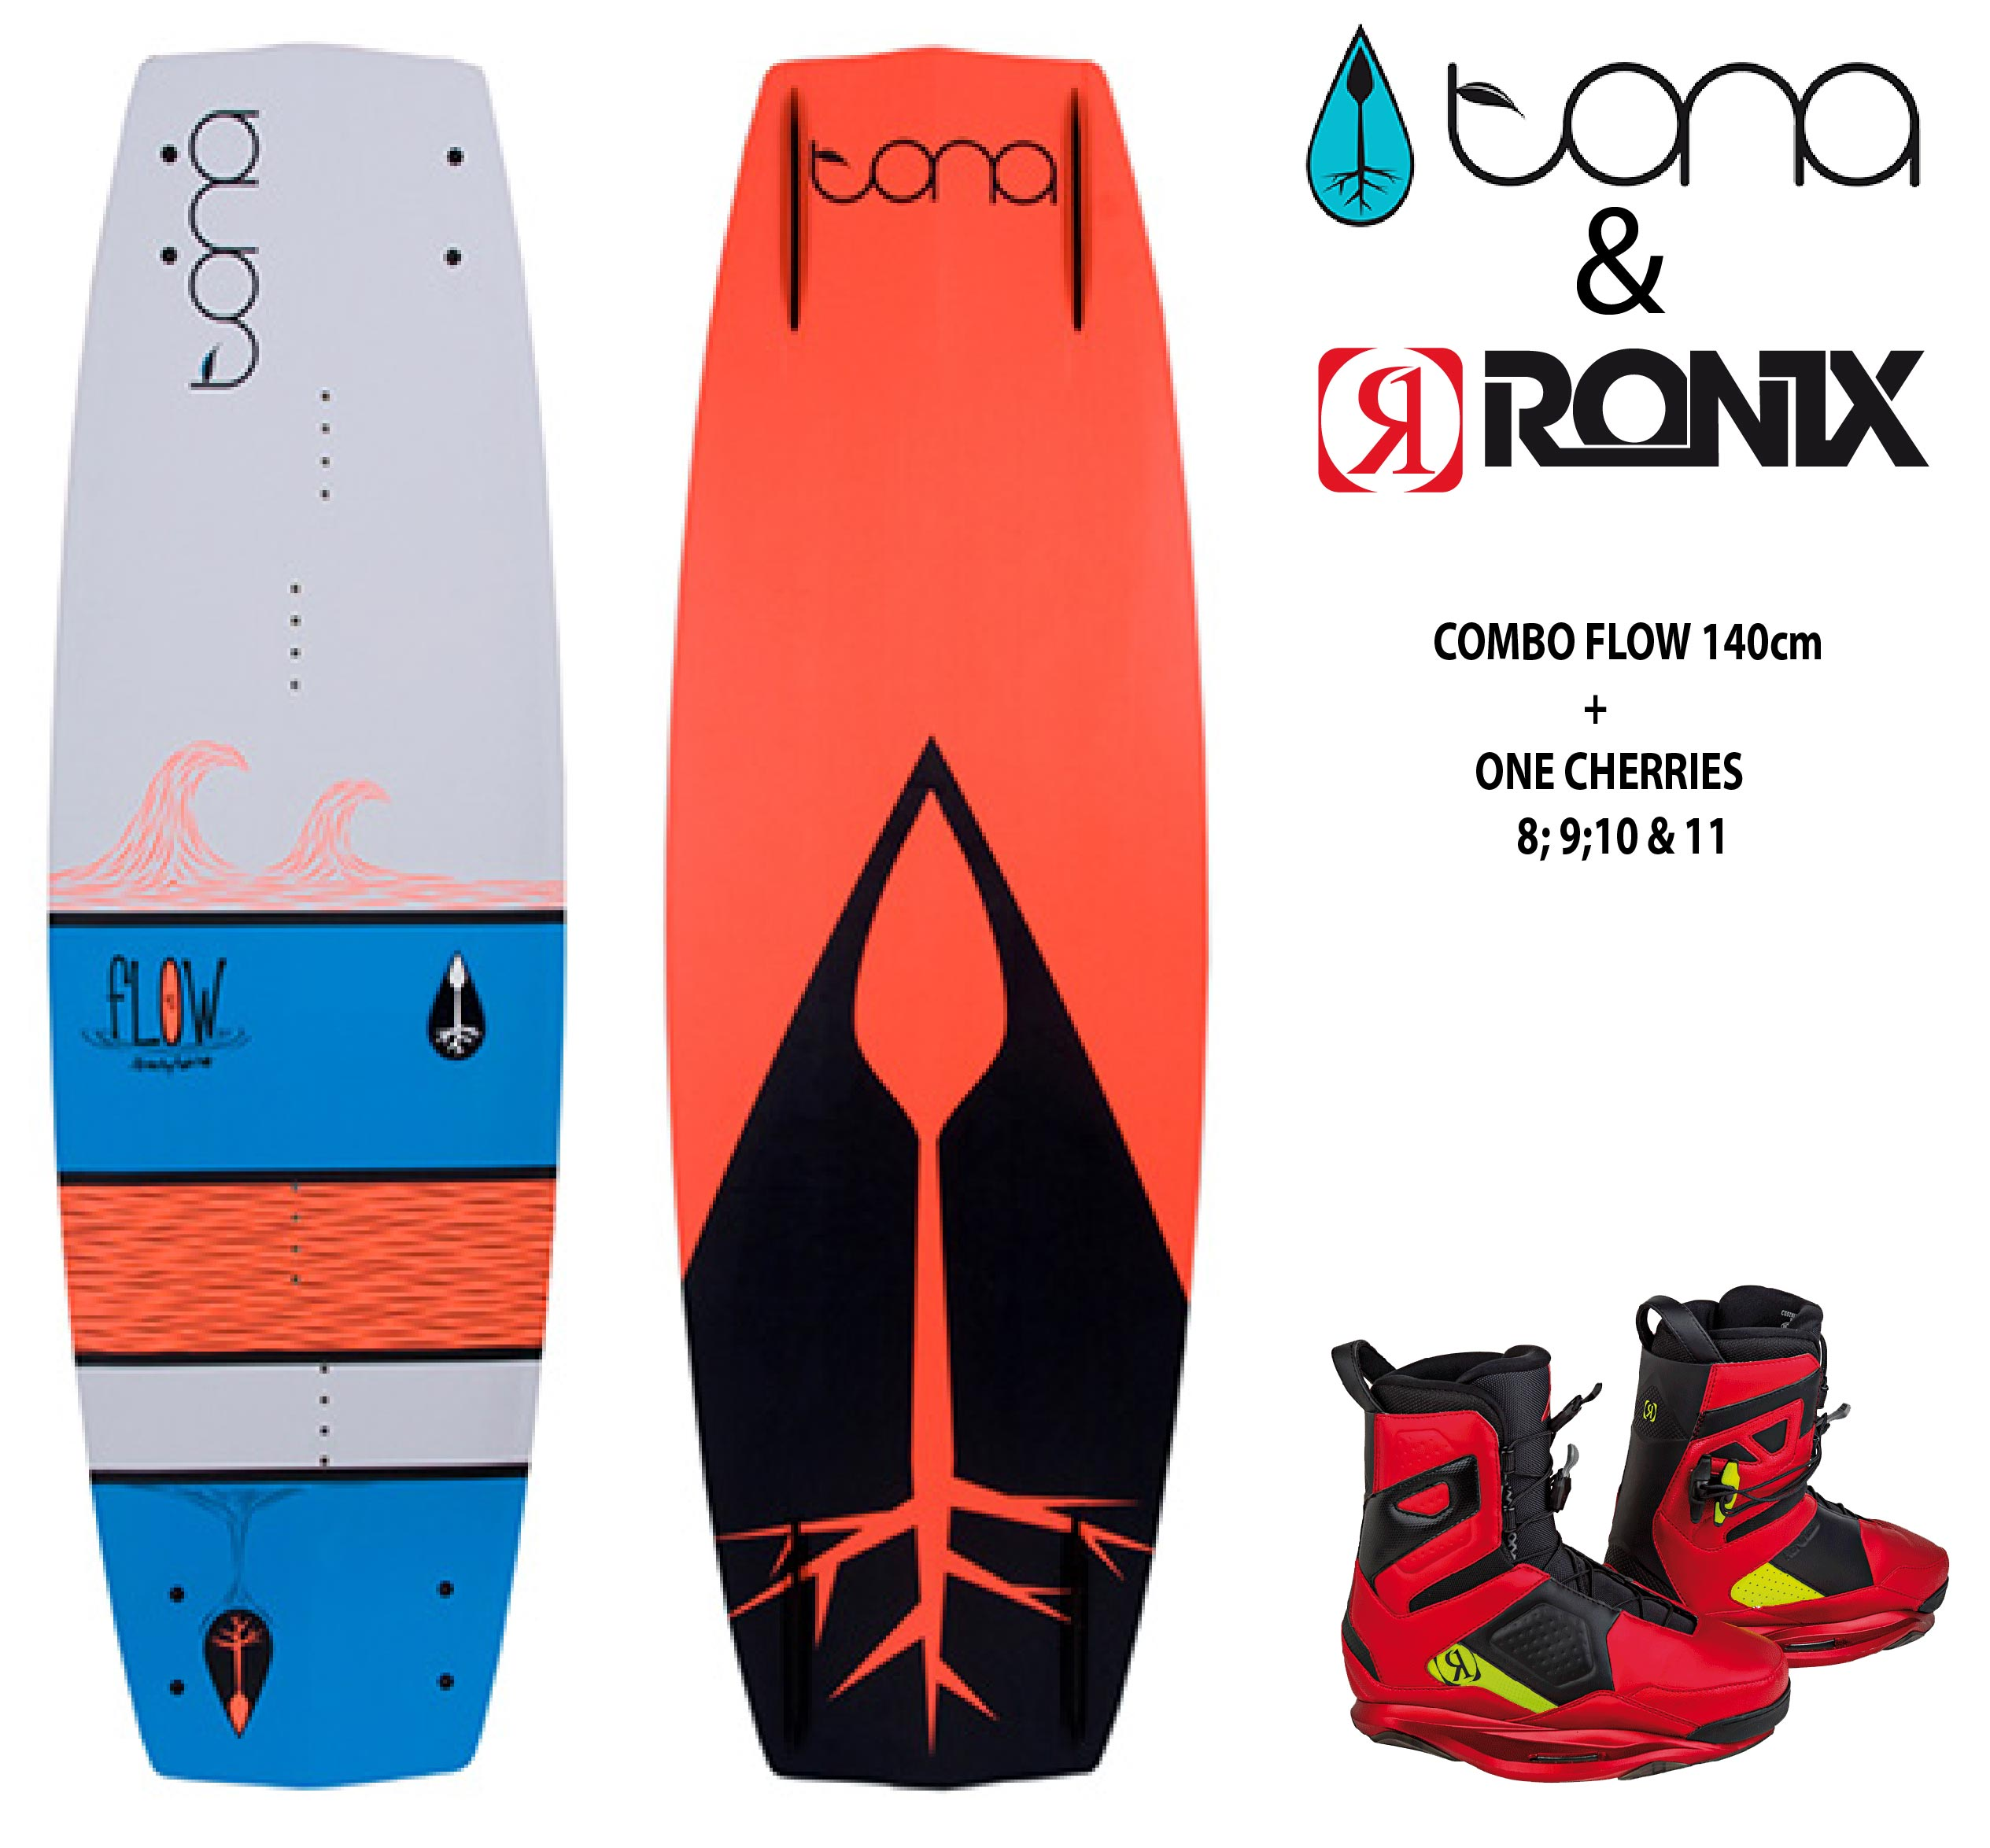 Combo Tona Flow 140cm c/Ronix One Cherries